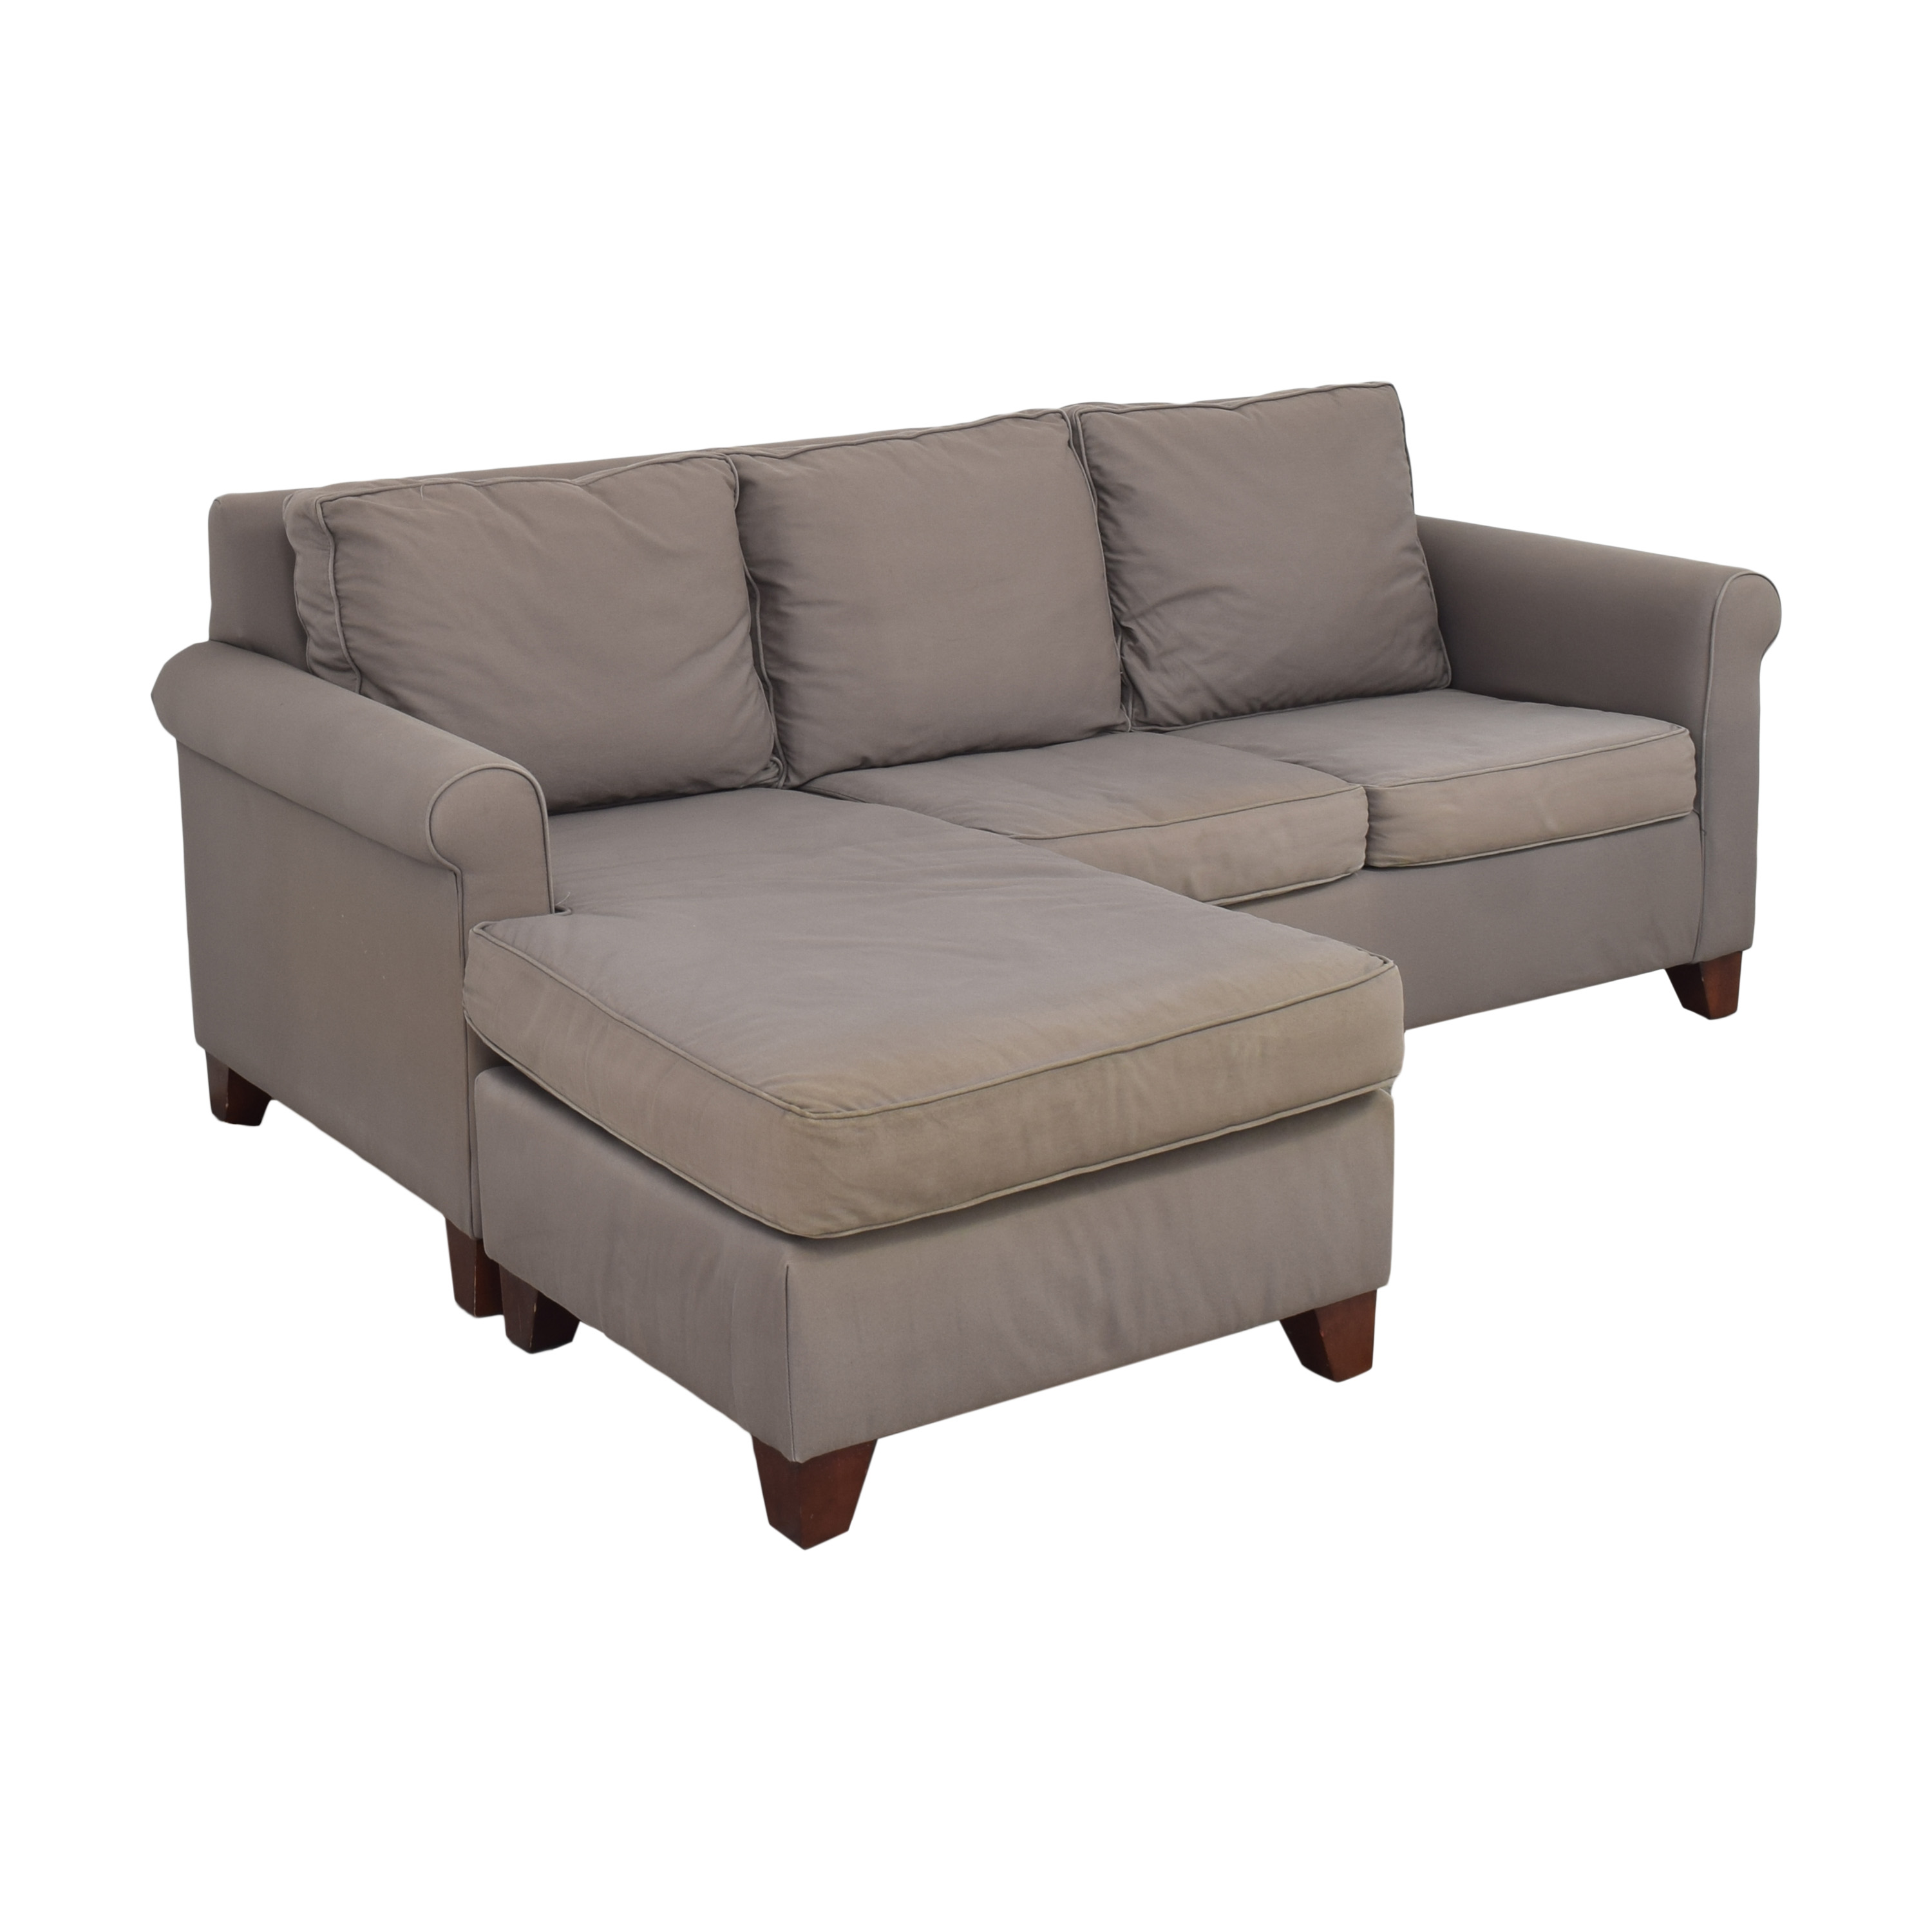 Pottery Barn Pottery Barn Cameron Sectional Sofa with Reversible Chaise Sofas